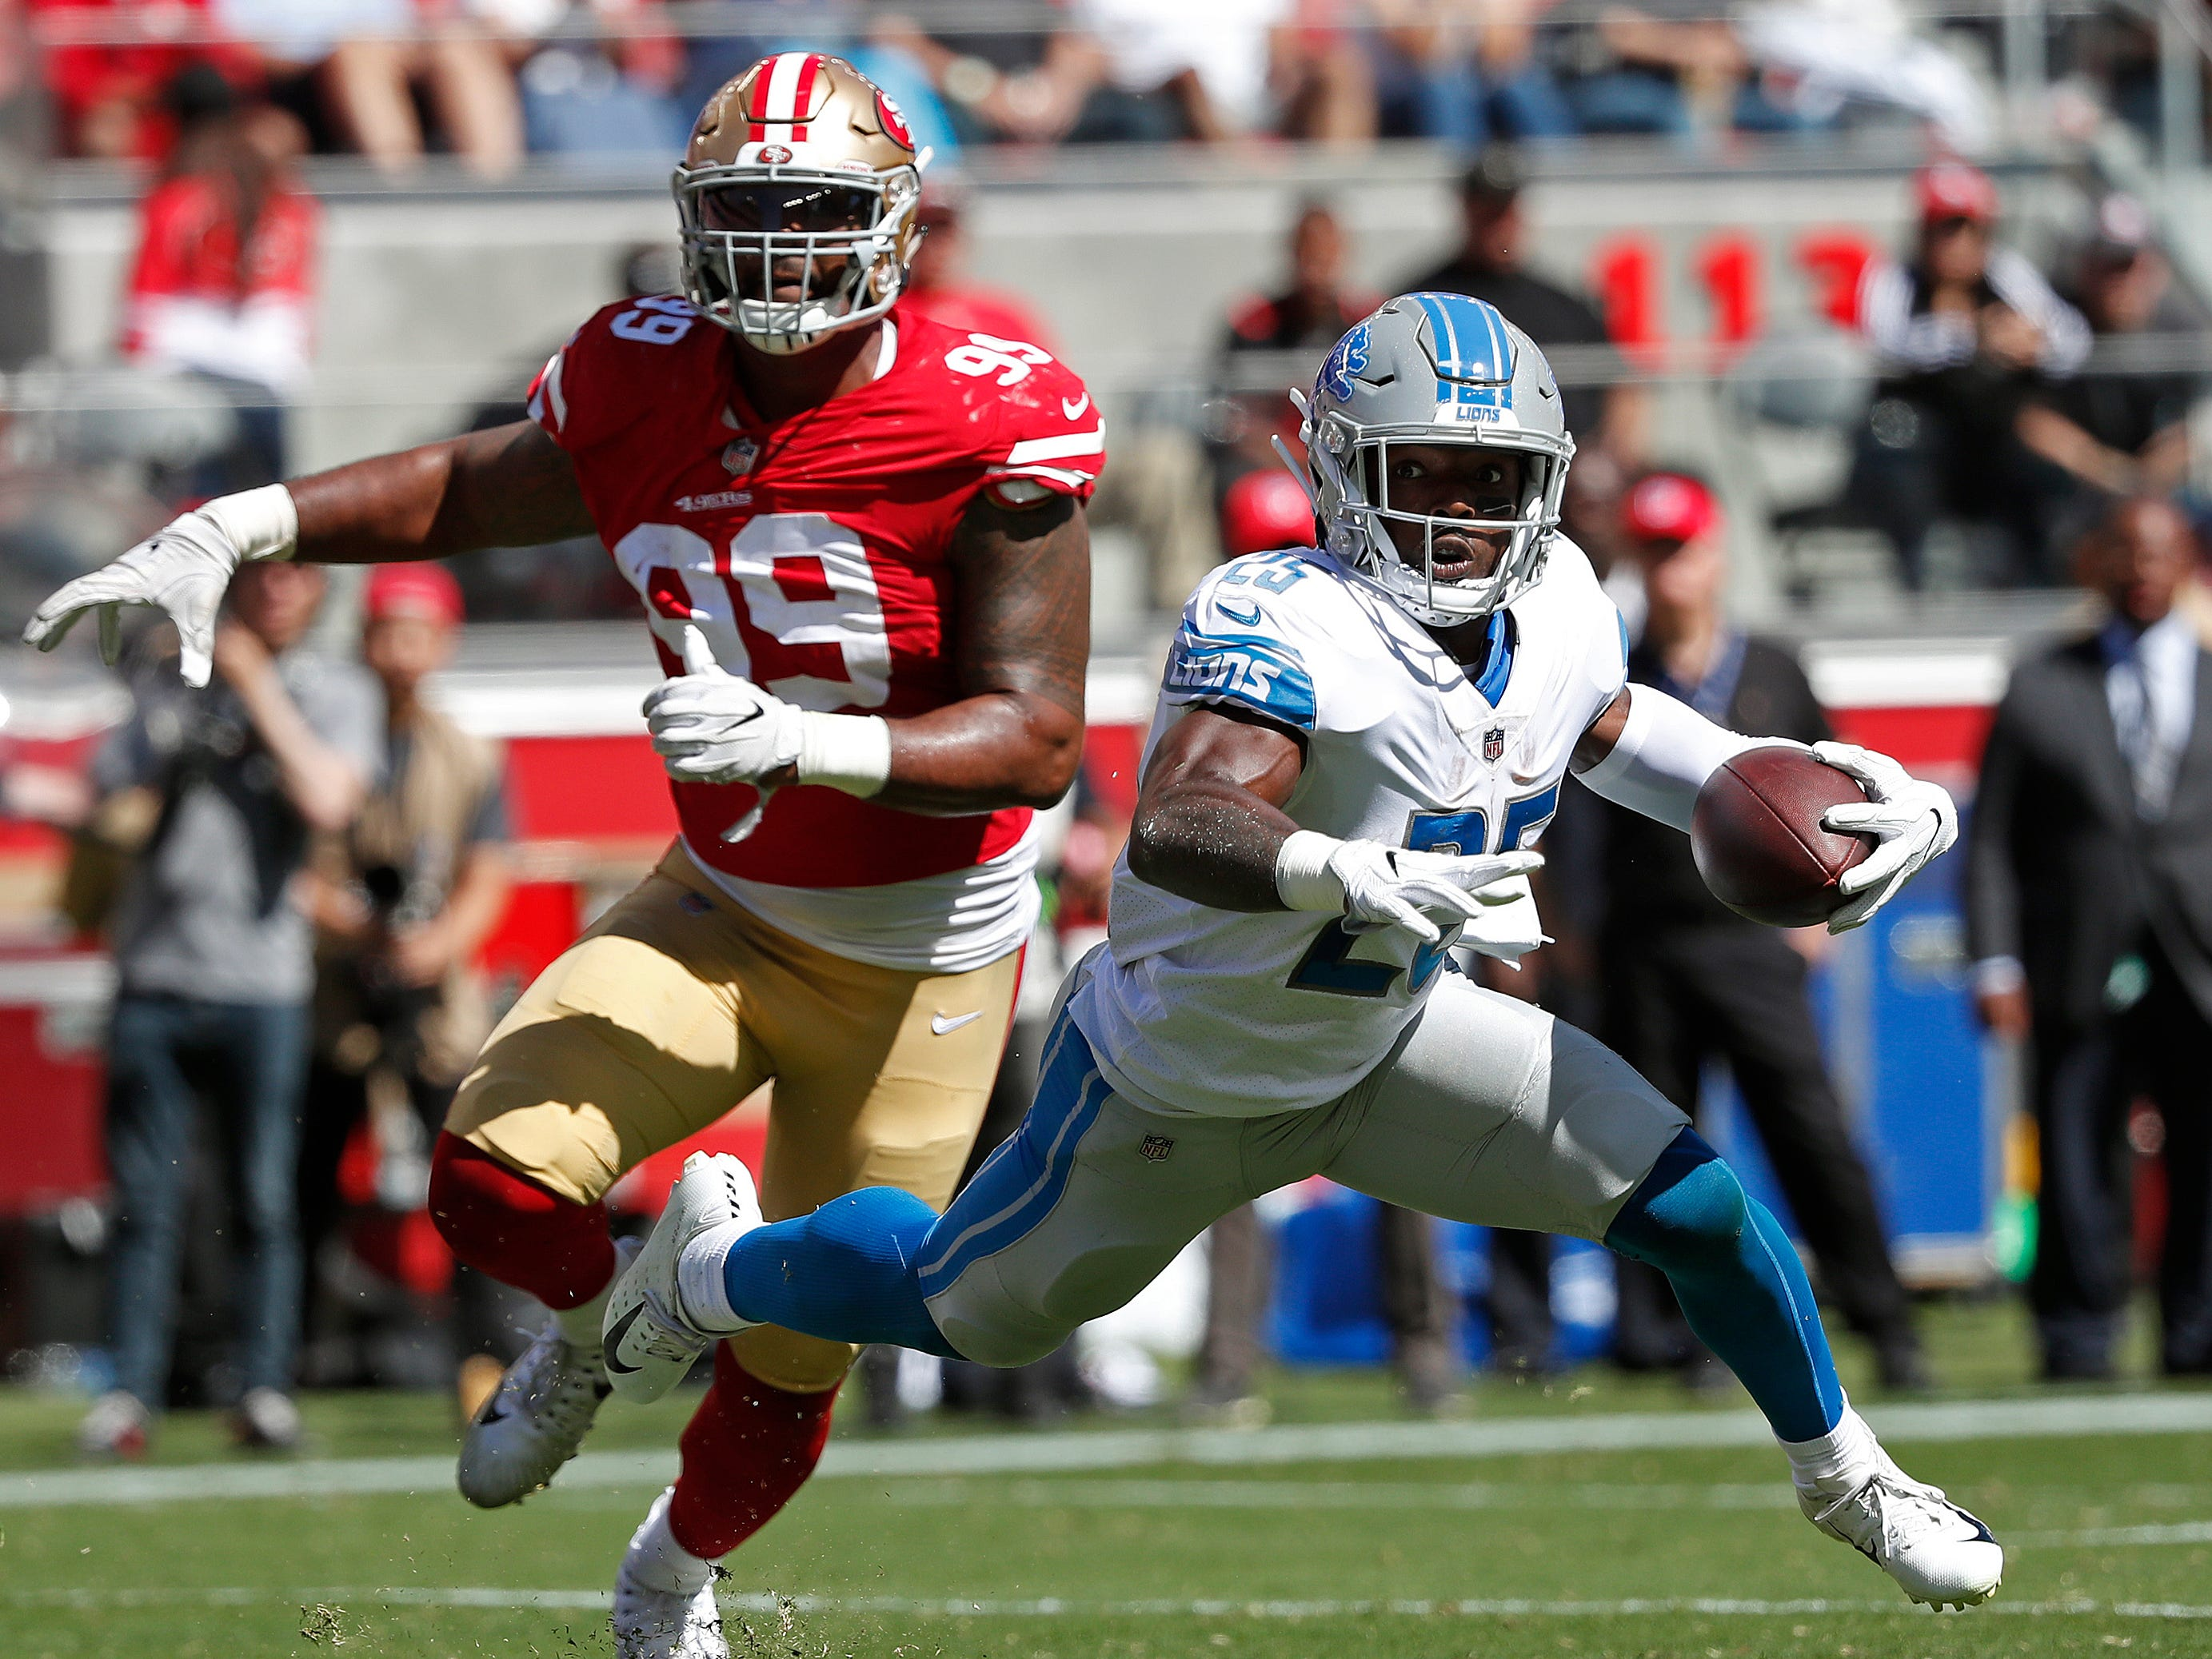 Lions running back Theo Riddick runs with the ball as 49ers defensive end DeForest Buckner (99) pursues during the first half on Sunday, Sept. 16, 2018, in Santa Clara, Calif.